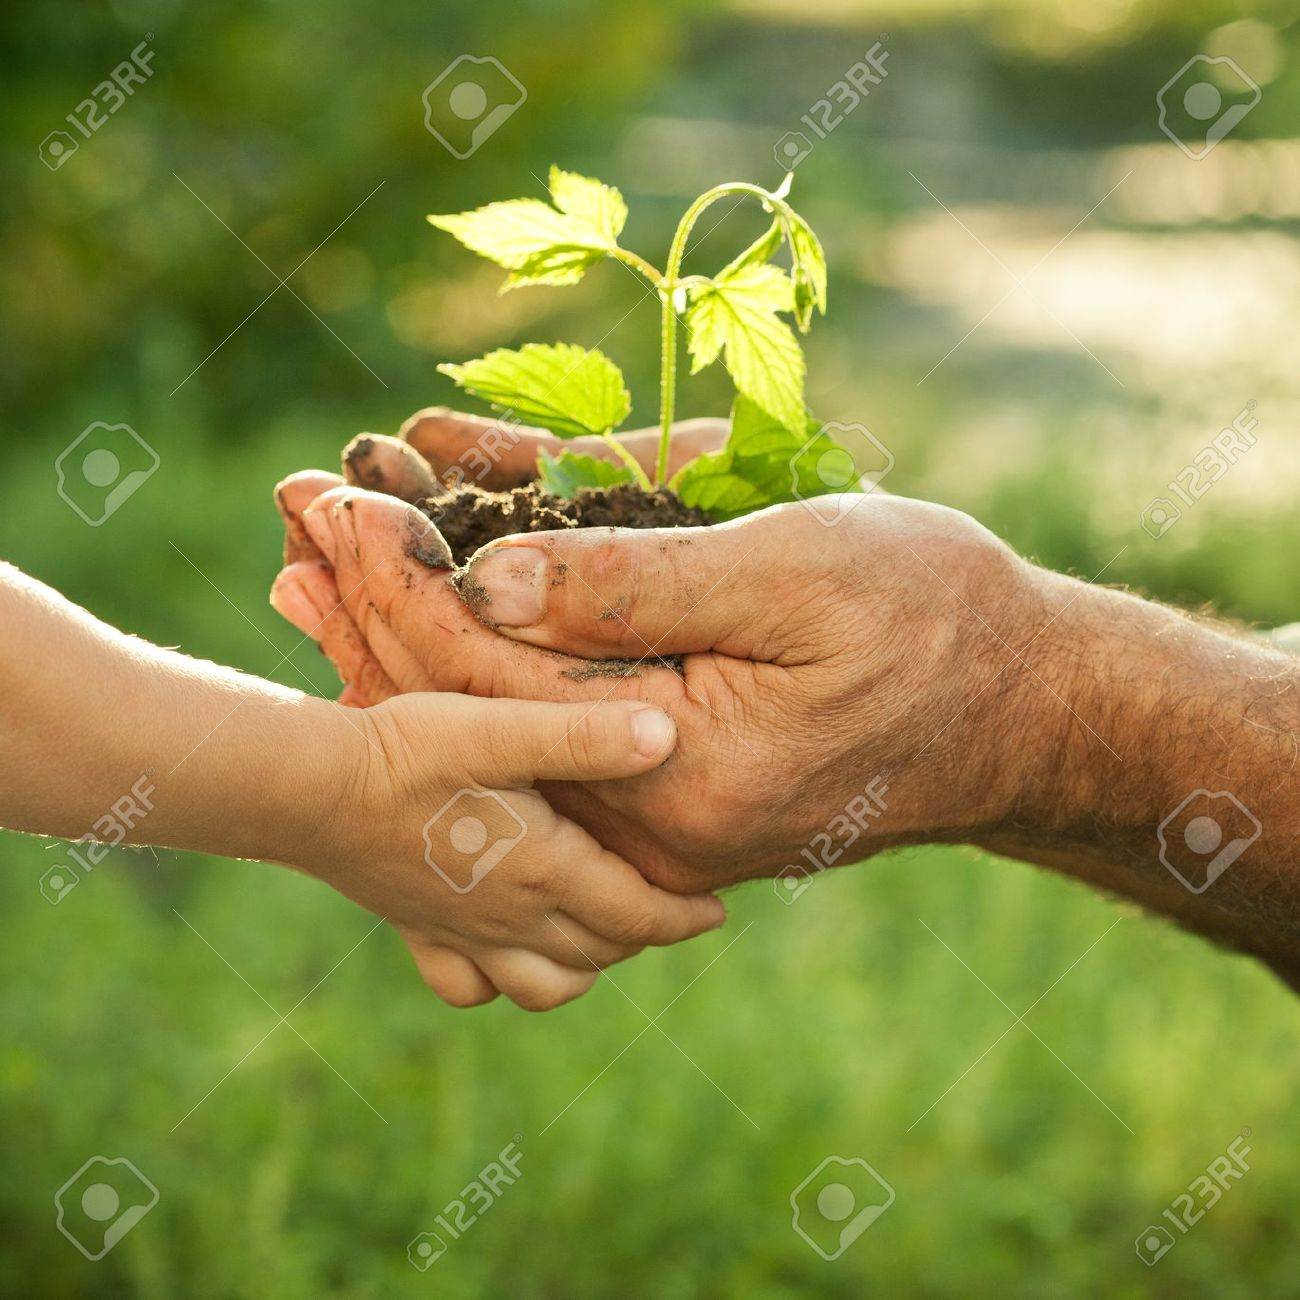 Hands of elderly man and baby holding a young plant against a green natural background in spring. Ecology concept Stock Photo - 11870363